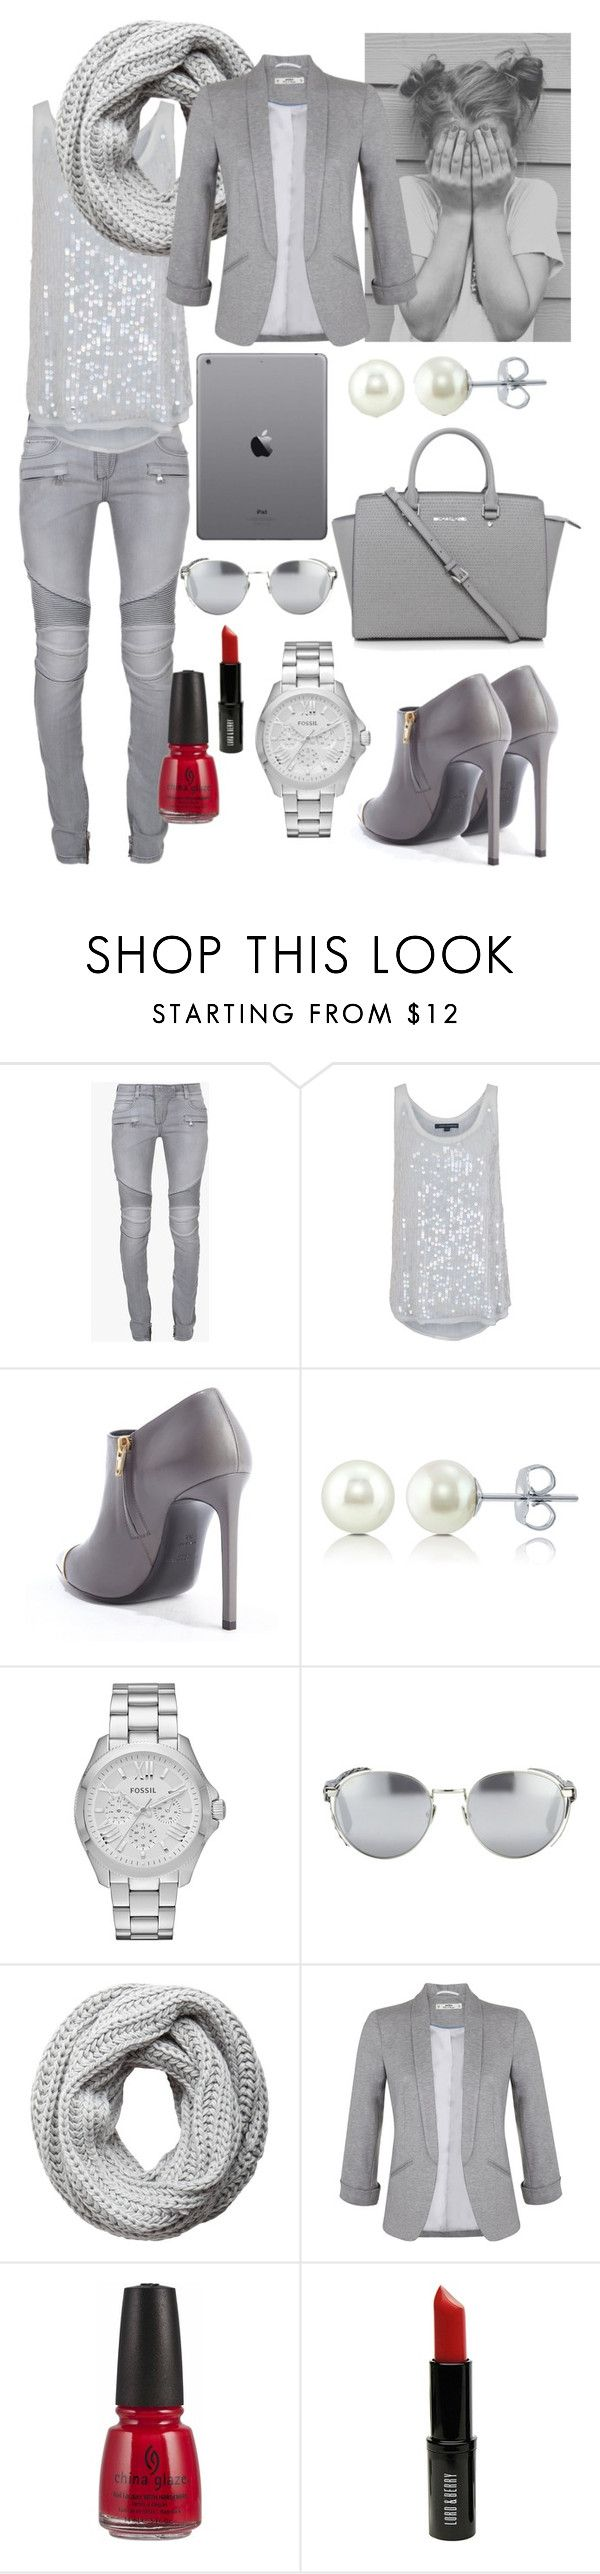 """grey // street style"" by sr-x ❤ liked on Polyvore featuring Balmain, French Connection, Yves Saint Laurent, BERRICLE, FOSSIL, Linda Farrow, Pieces, Miss Selfridge, China Glaze and Lord & Berry"